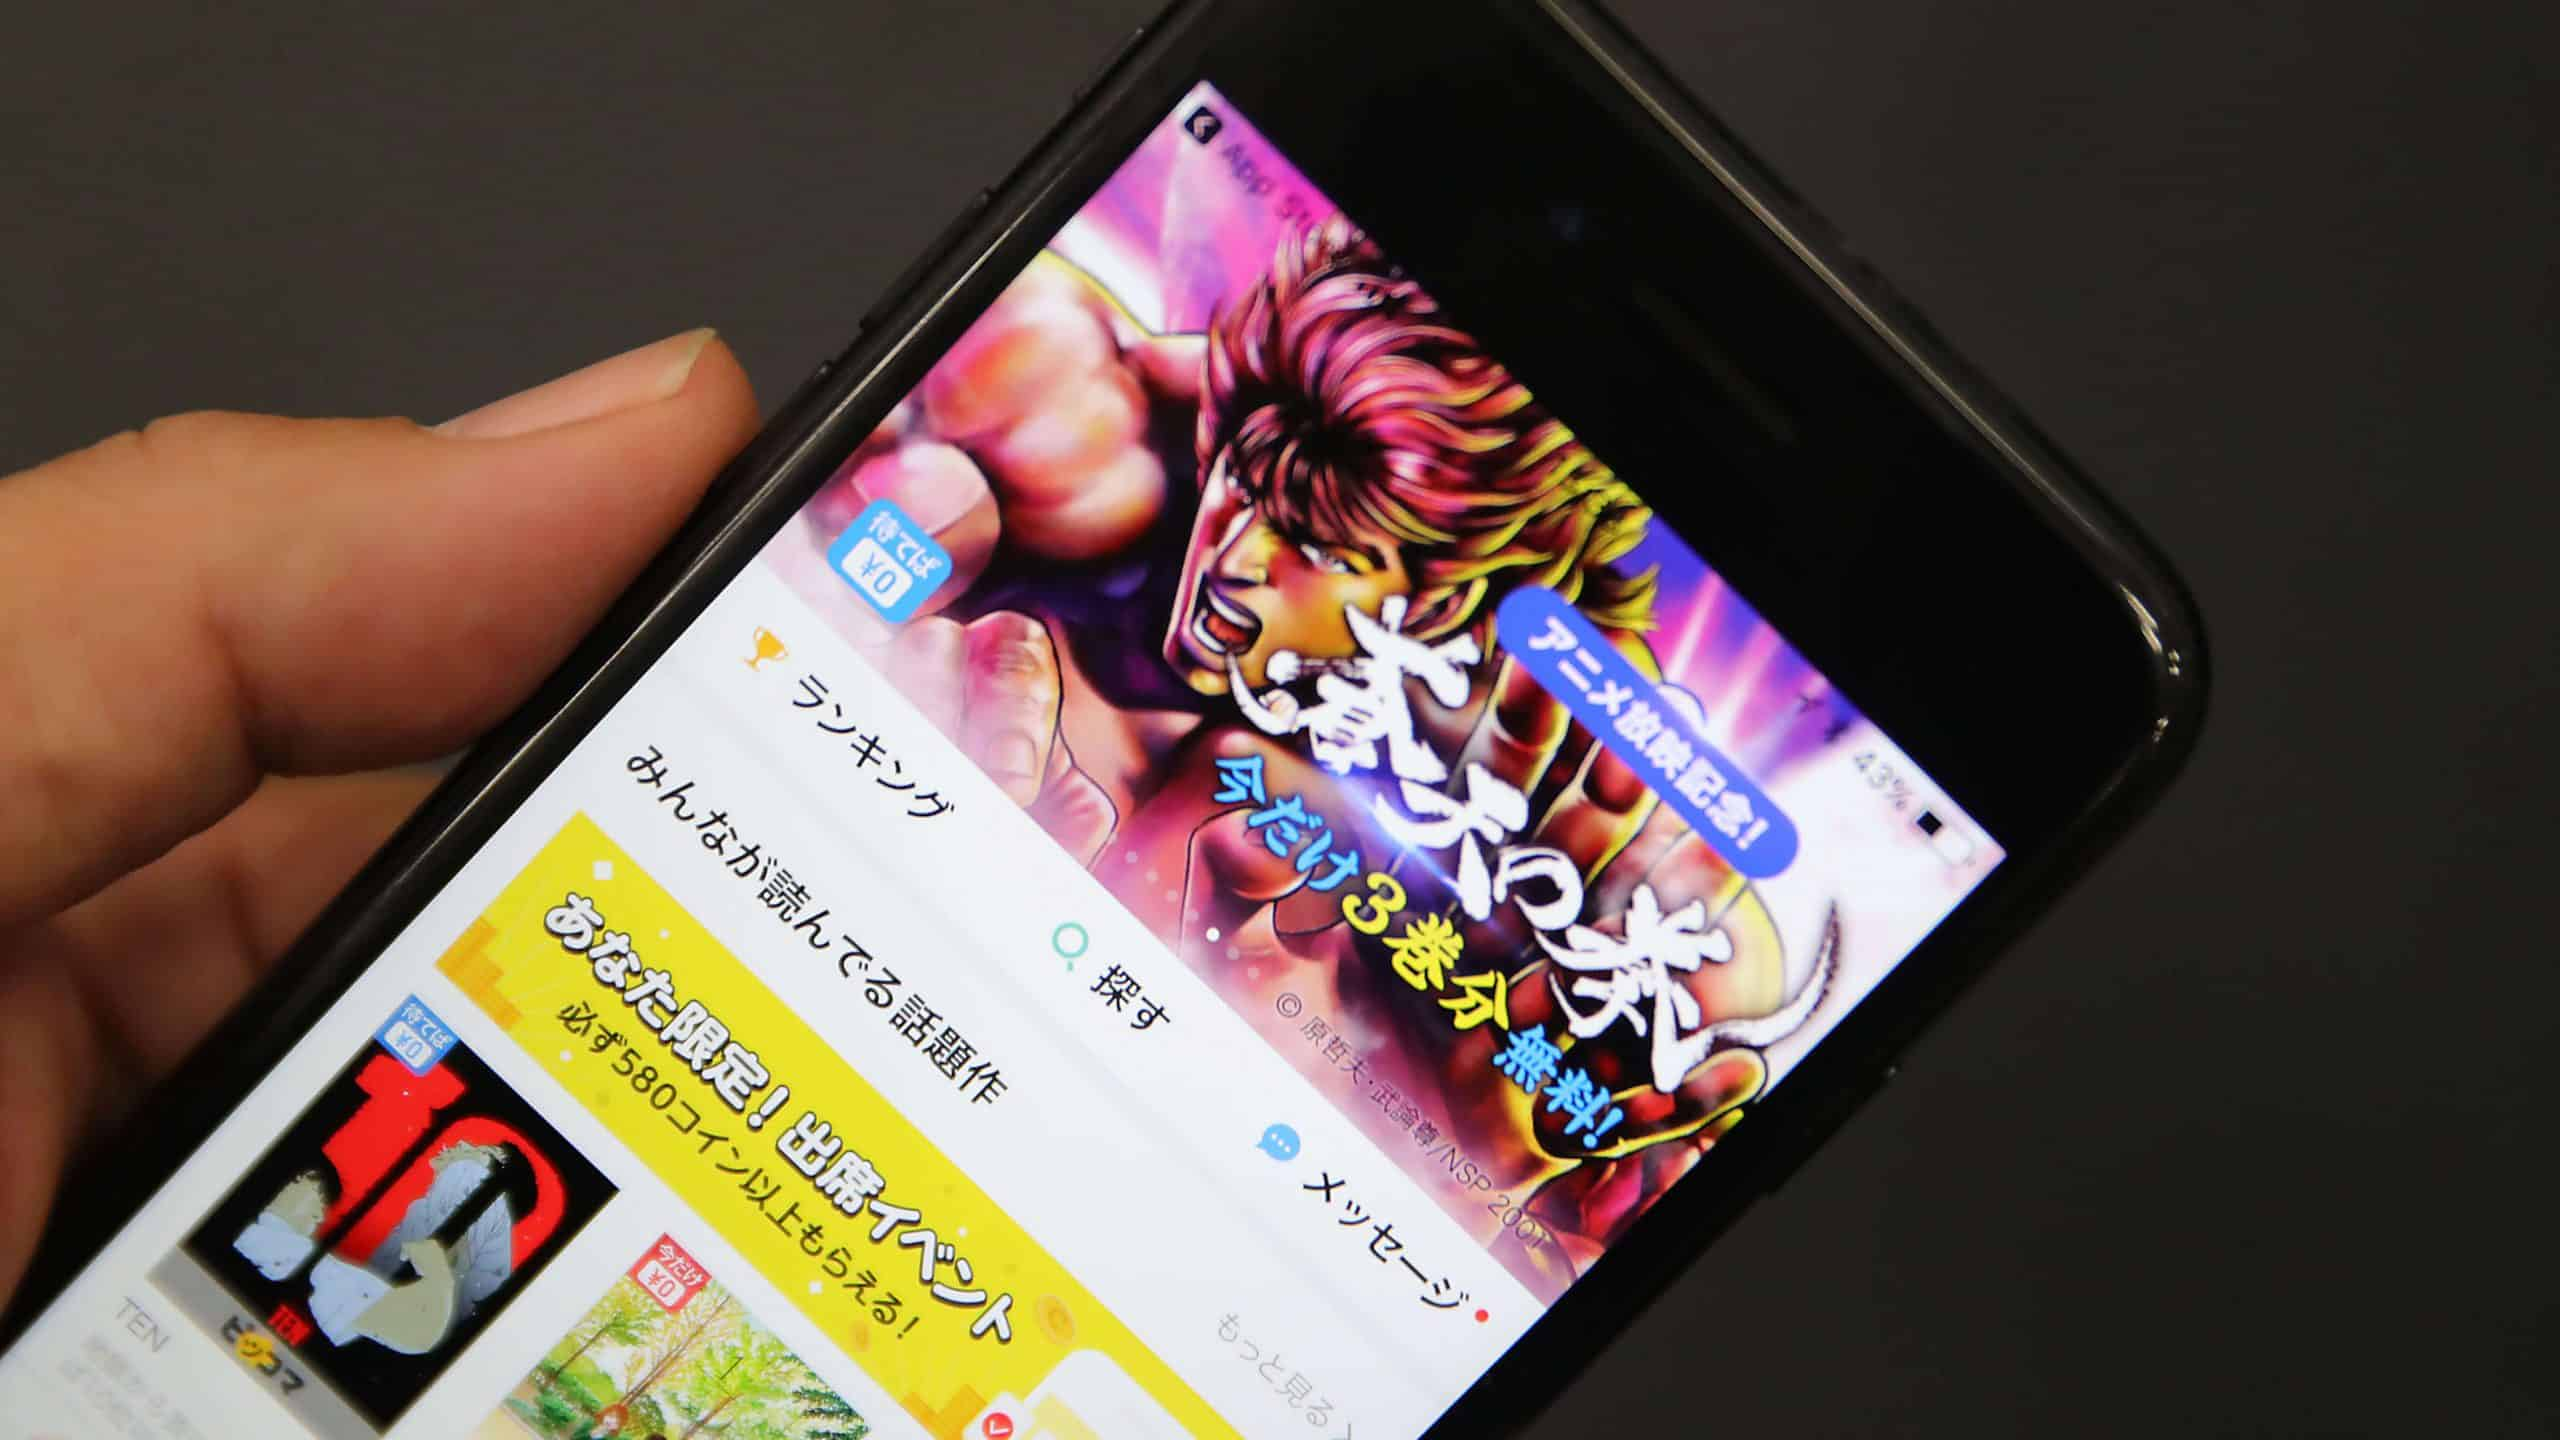 manga app android reading free phone smartphone